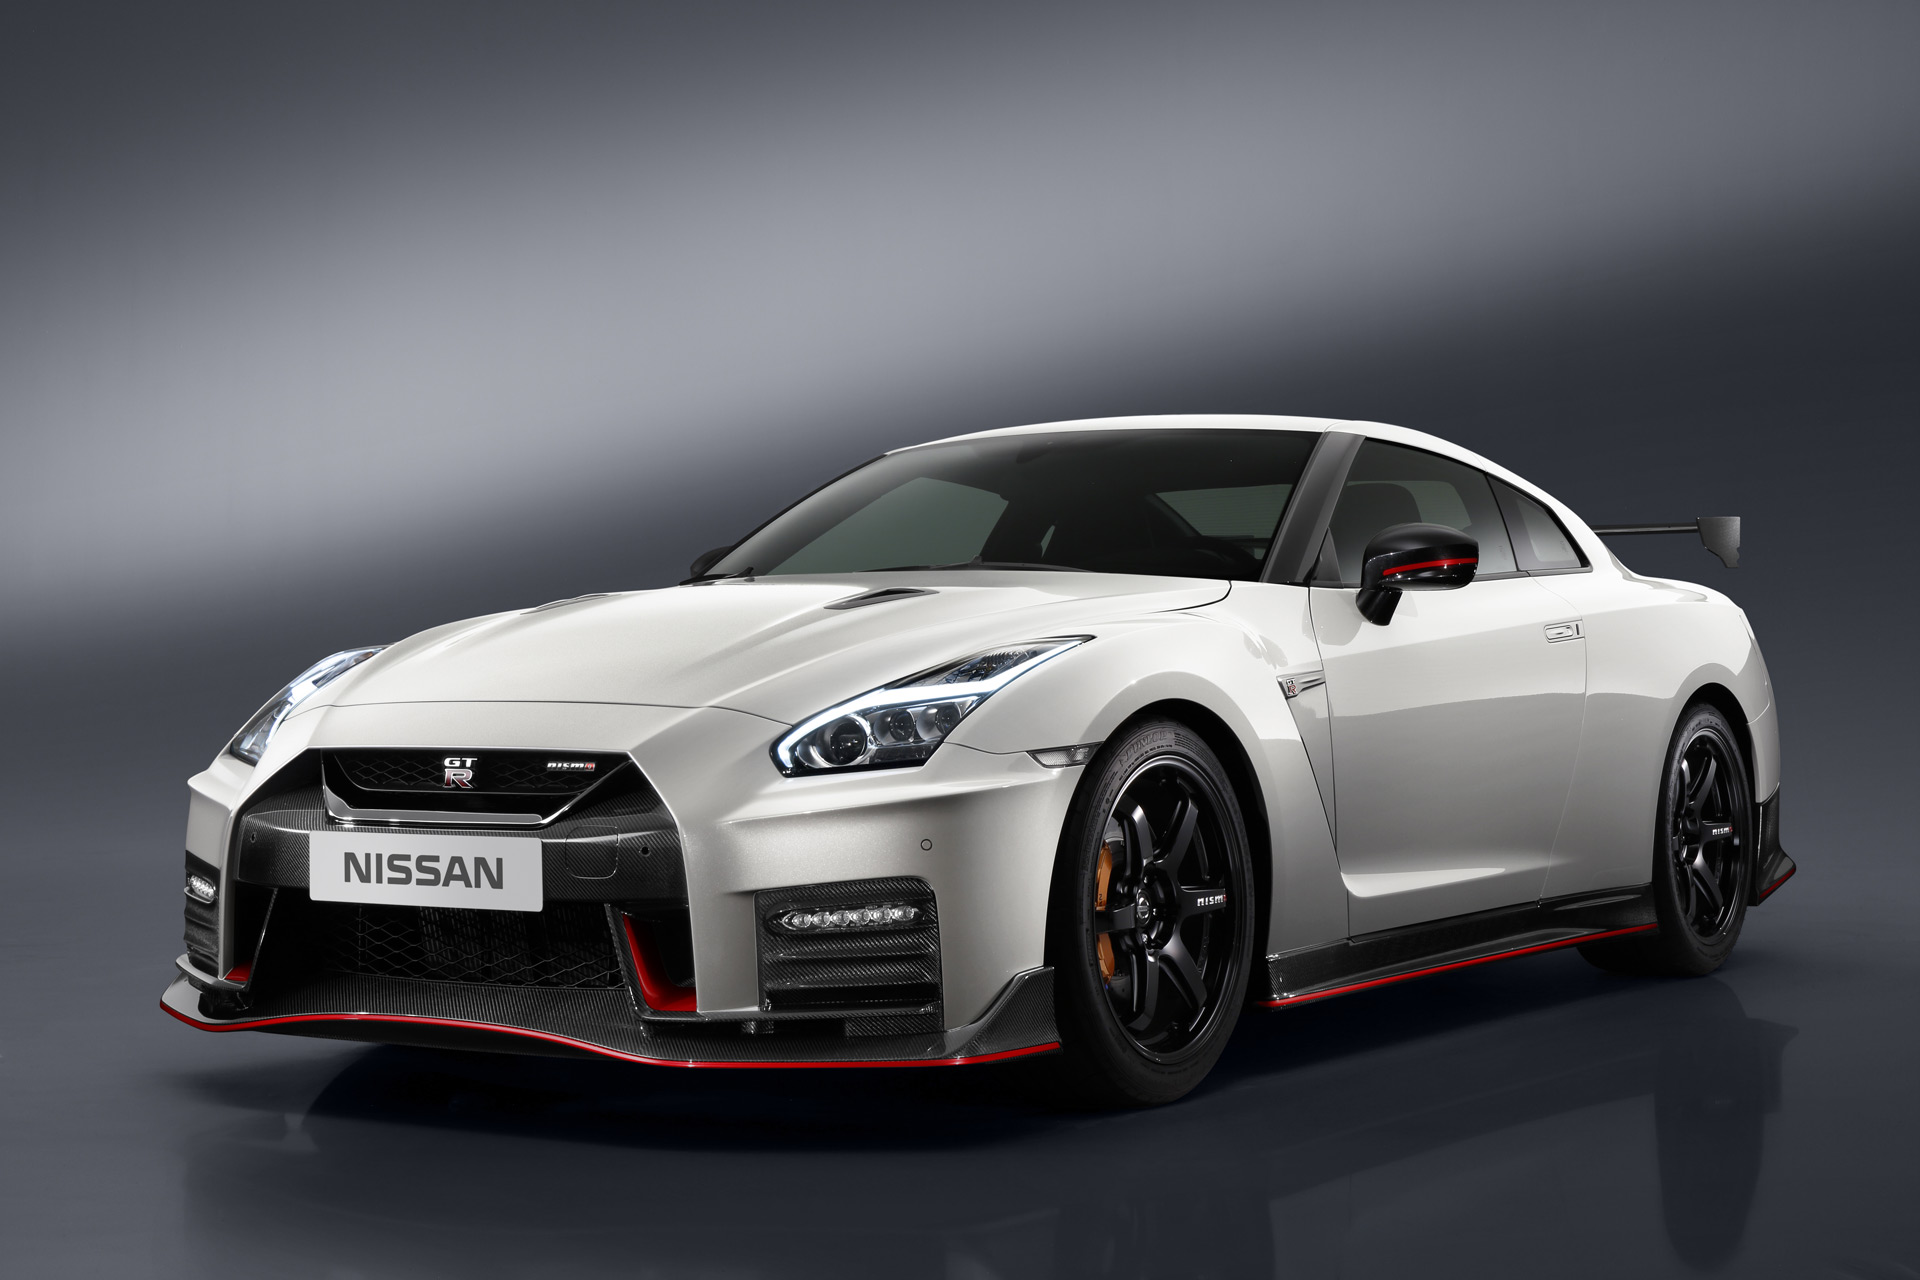 78 The 2019 Nissan Gt R Nismo Engine